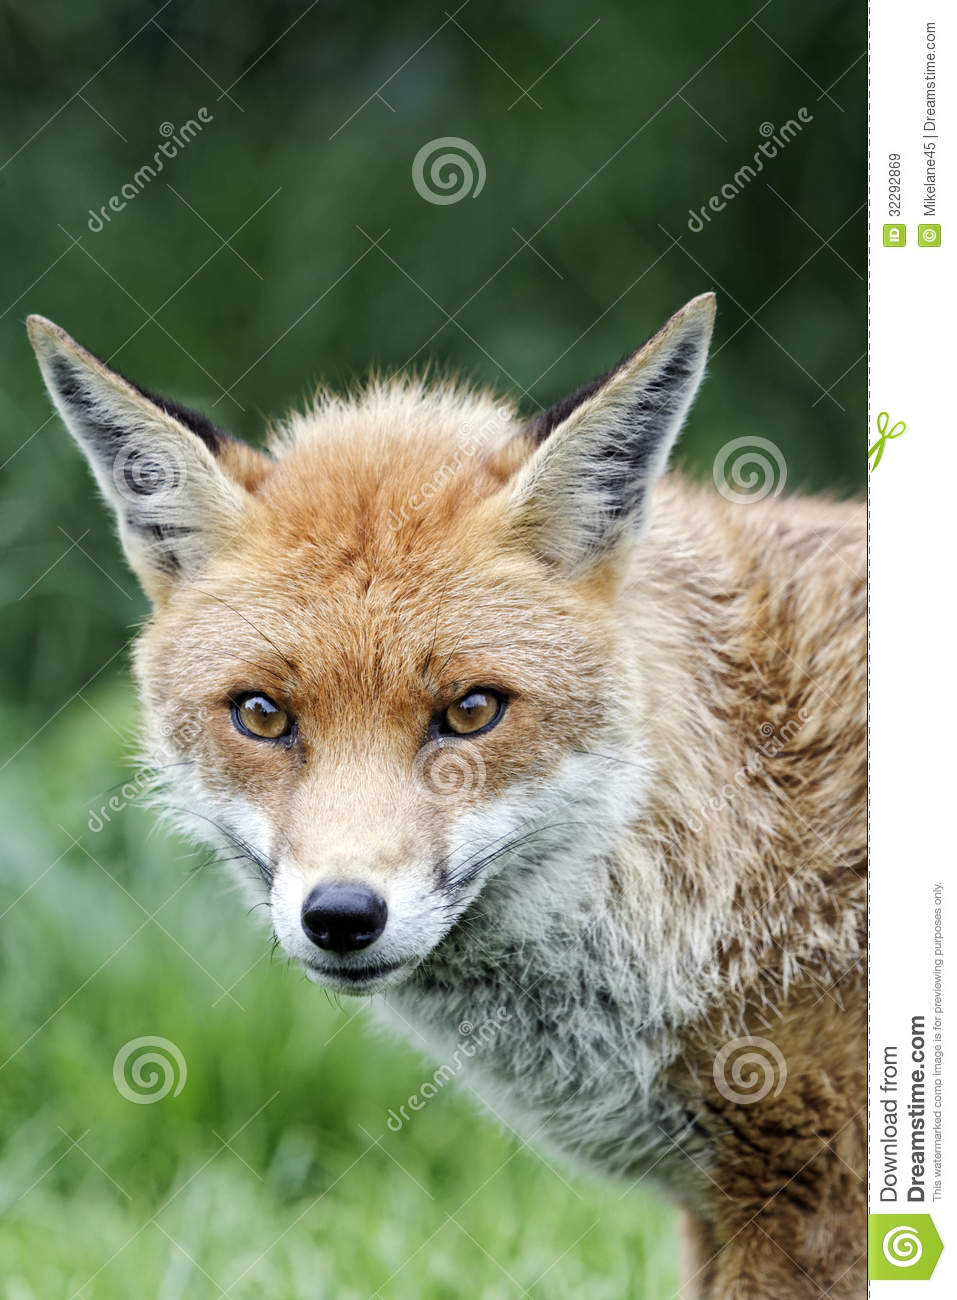 single men in redfox The red fox (vulpes vulpes) single components with single frequency band possible natural harmonics frequency rises, then falls seeking contact.